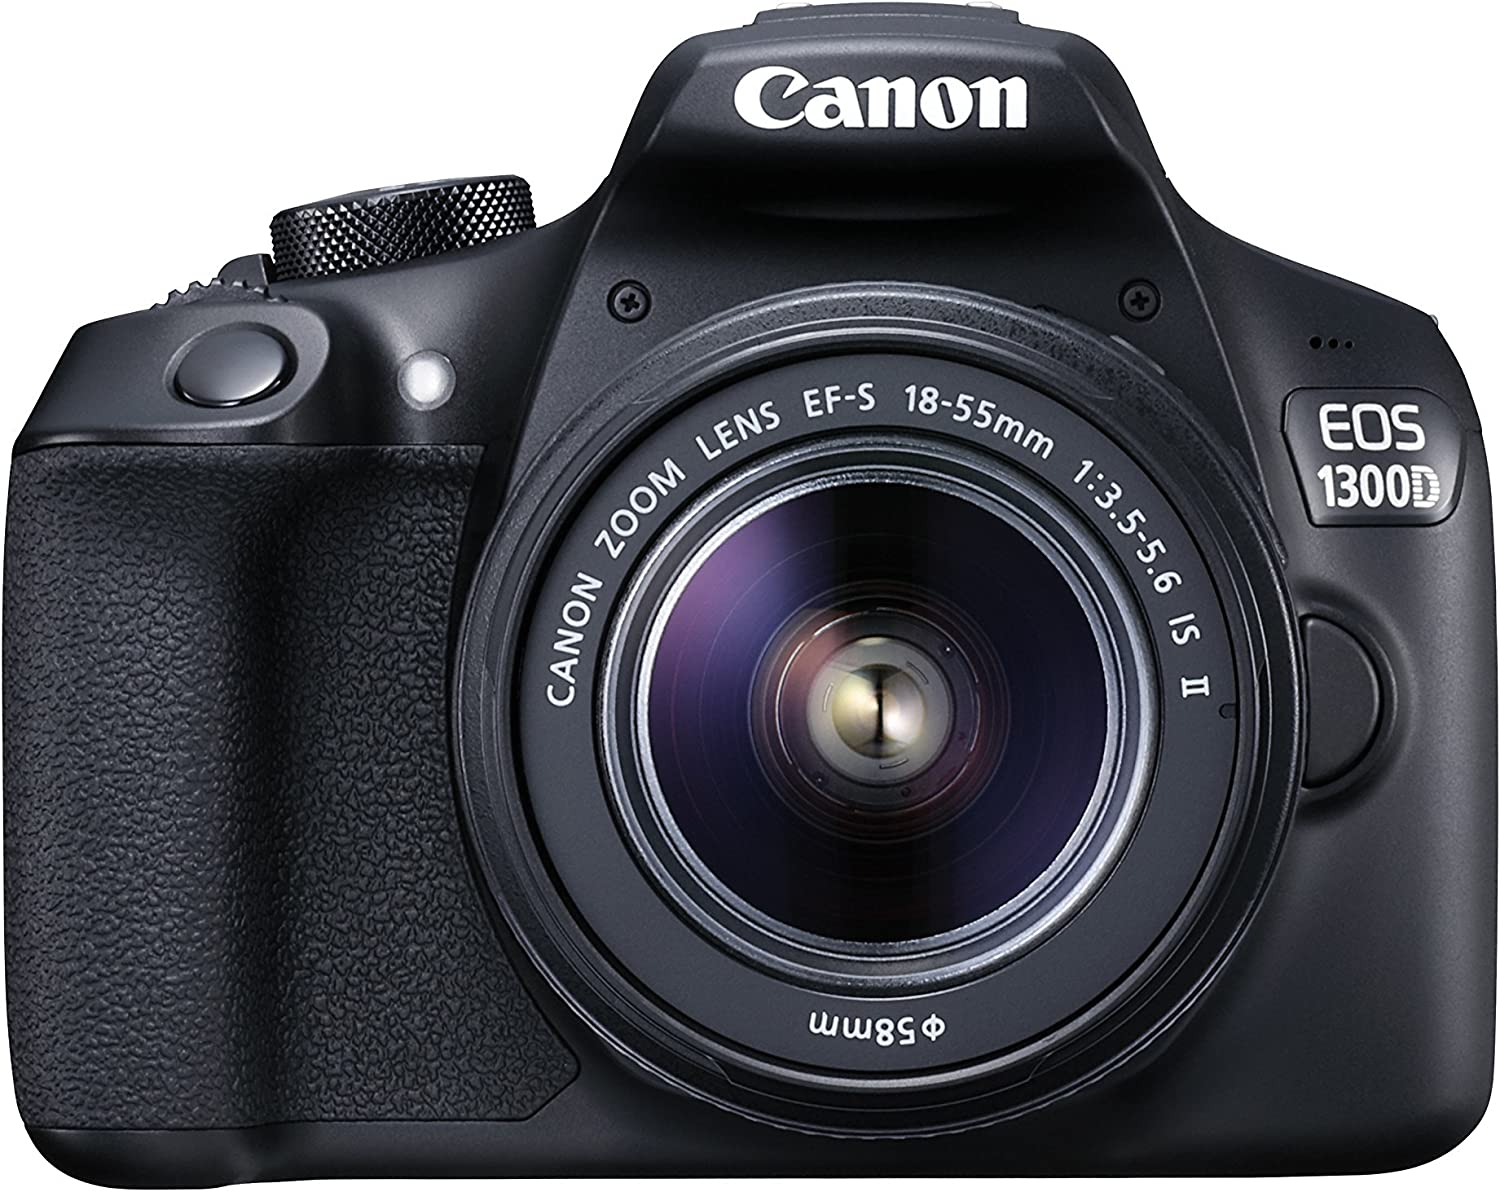 Canon EOS 1300D DSLR Camera with EF-S18-55 IS II F3.5-5.6 Lens ...